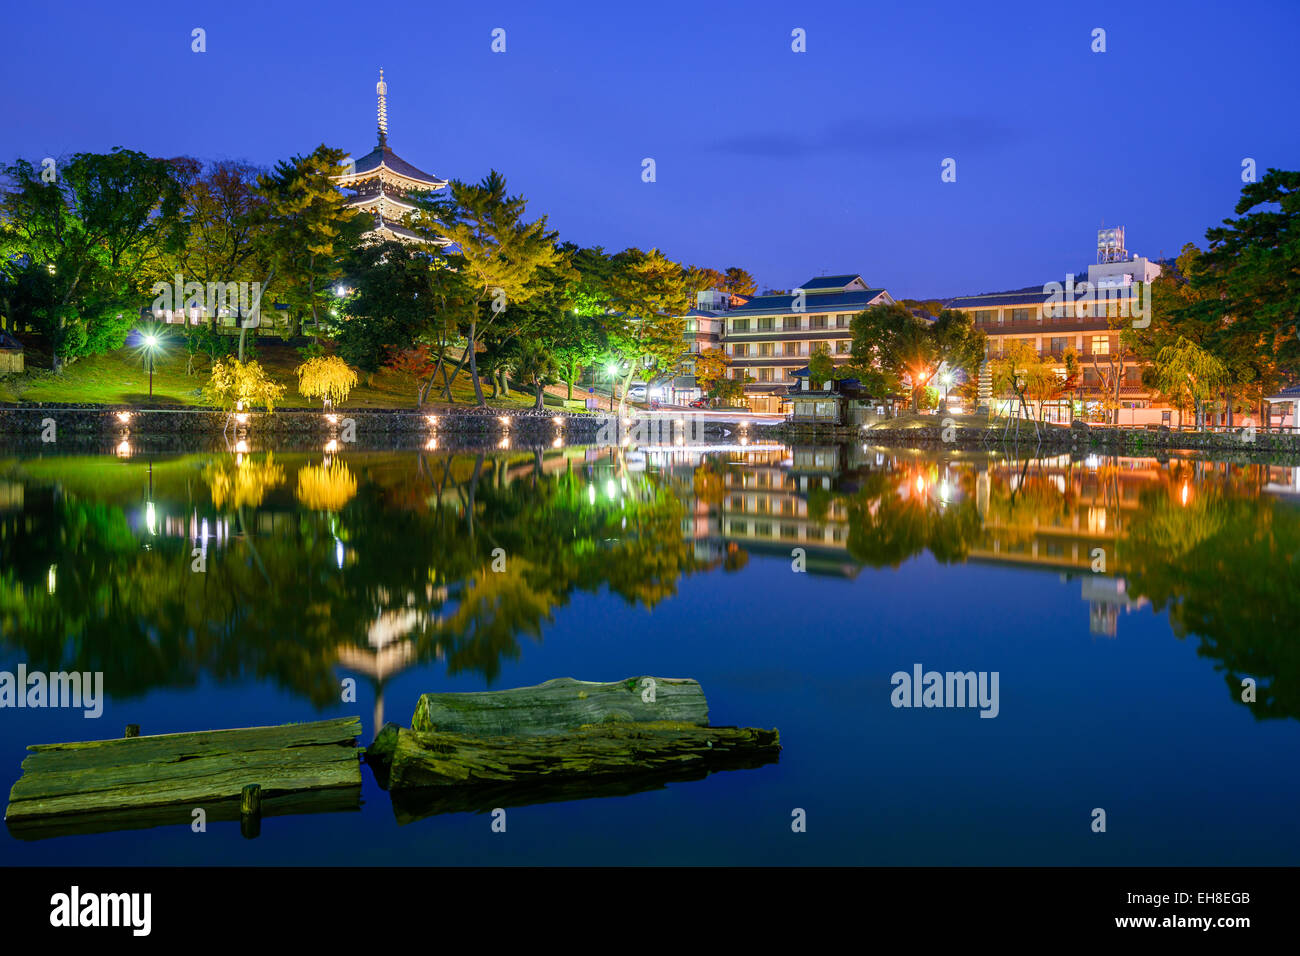 Nara, Japan old town skyline. - Stock Image